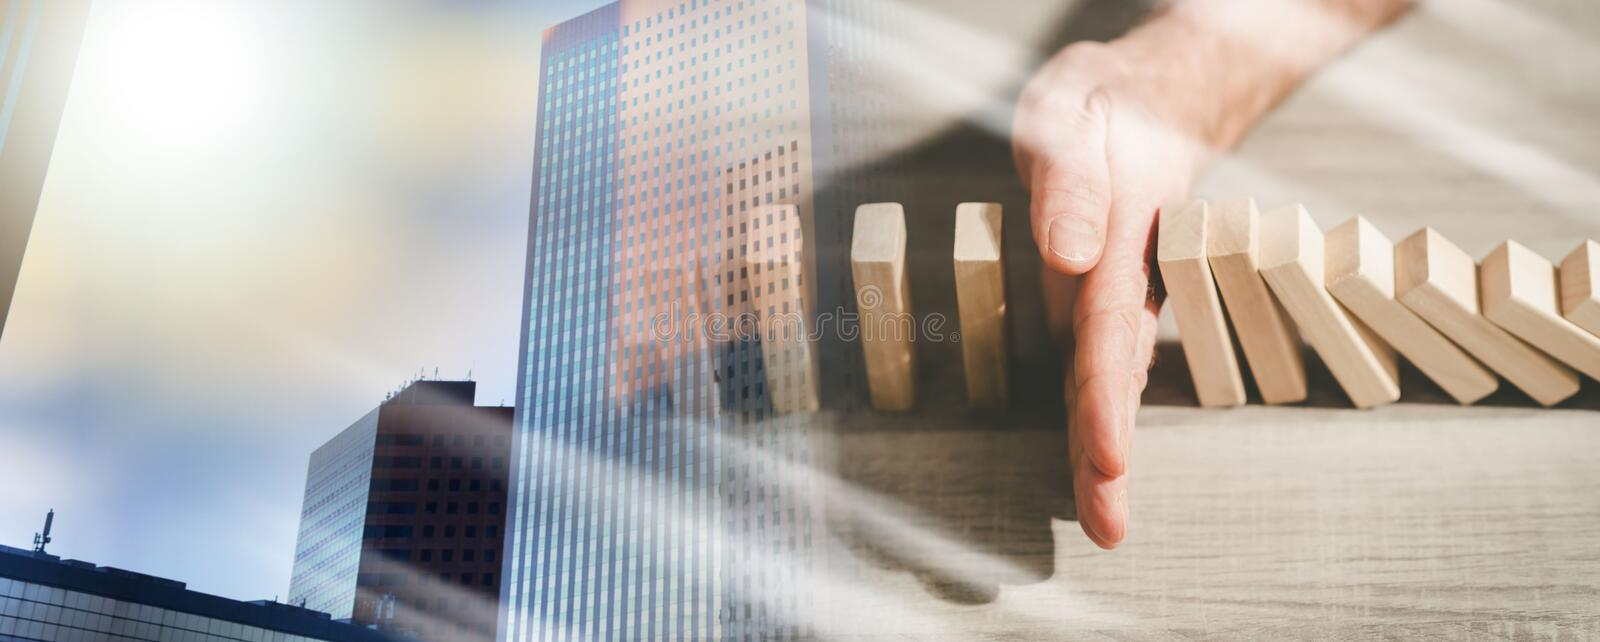 Concept of business control by stopping domino effect; multiple exposure royalty free stock photography